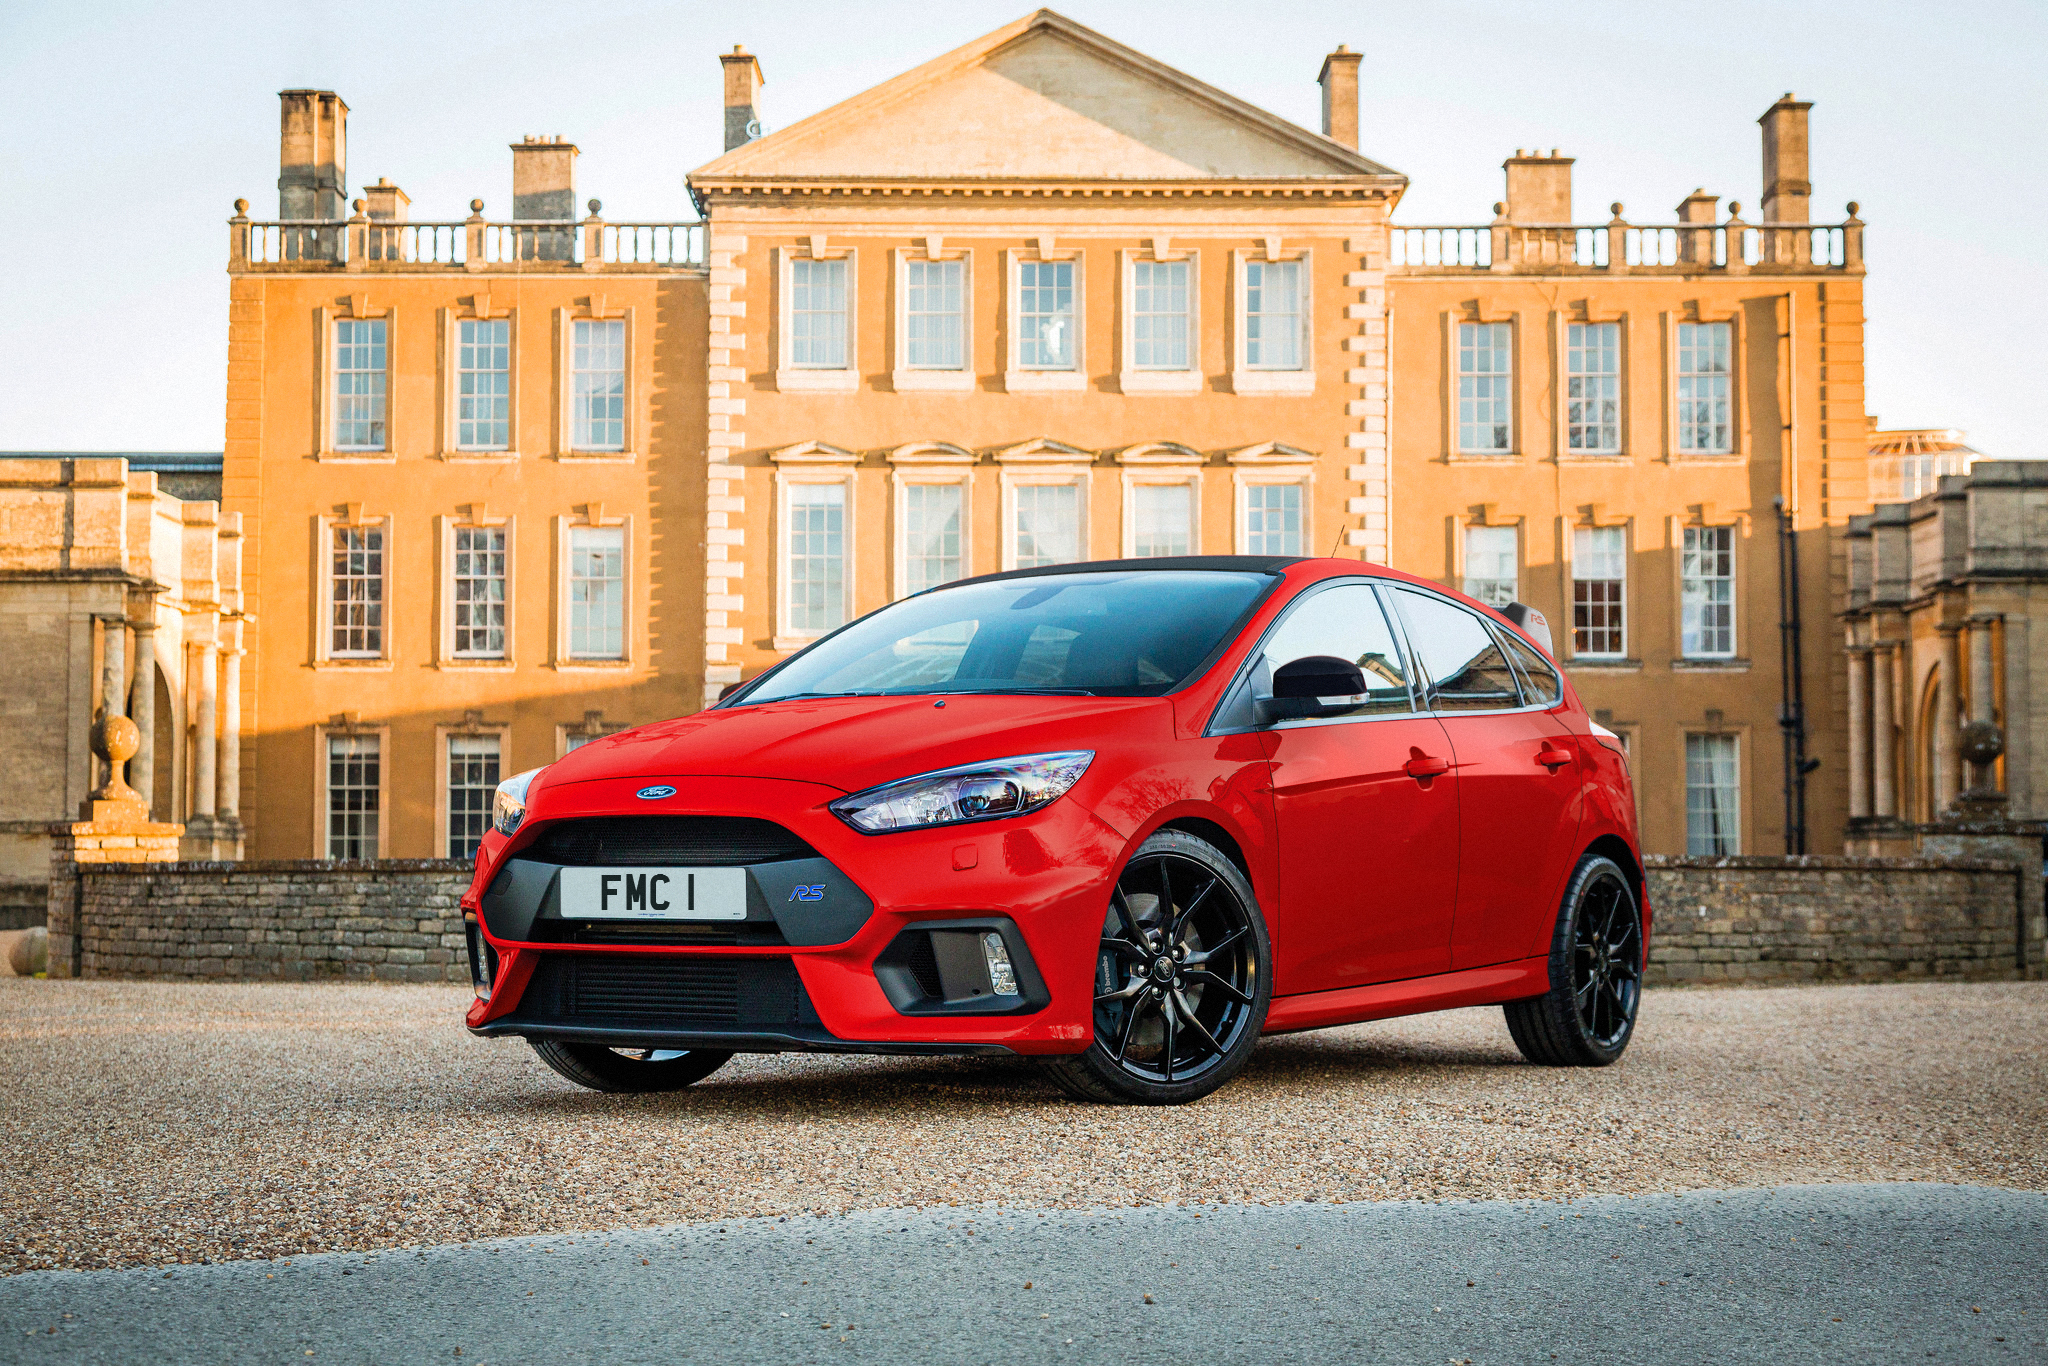 Ford Focus RS Red Edition is clearly Rudolf's nose…